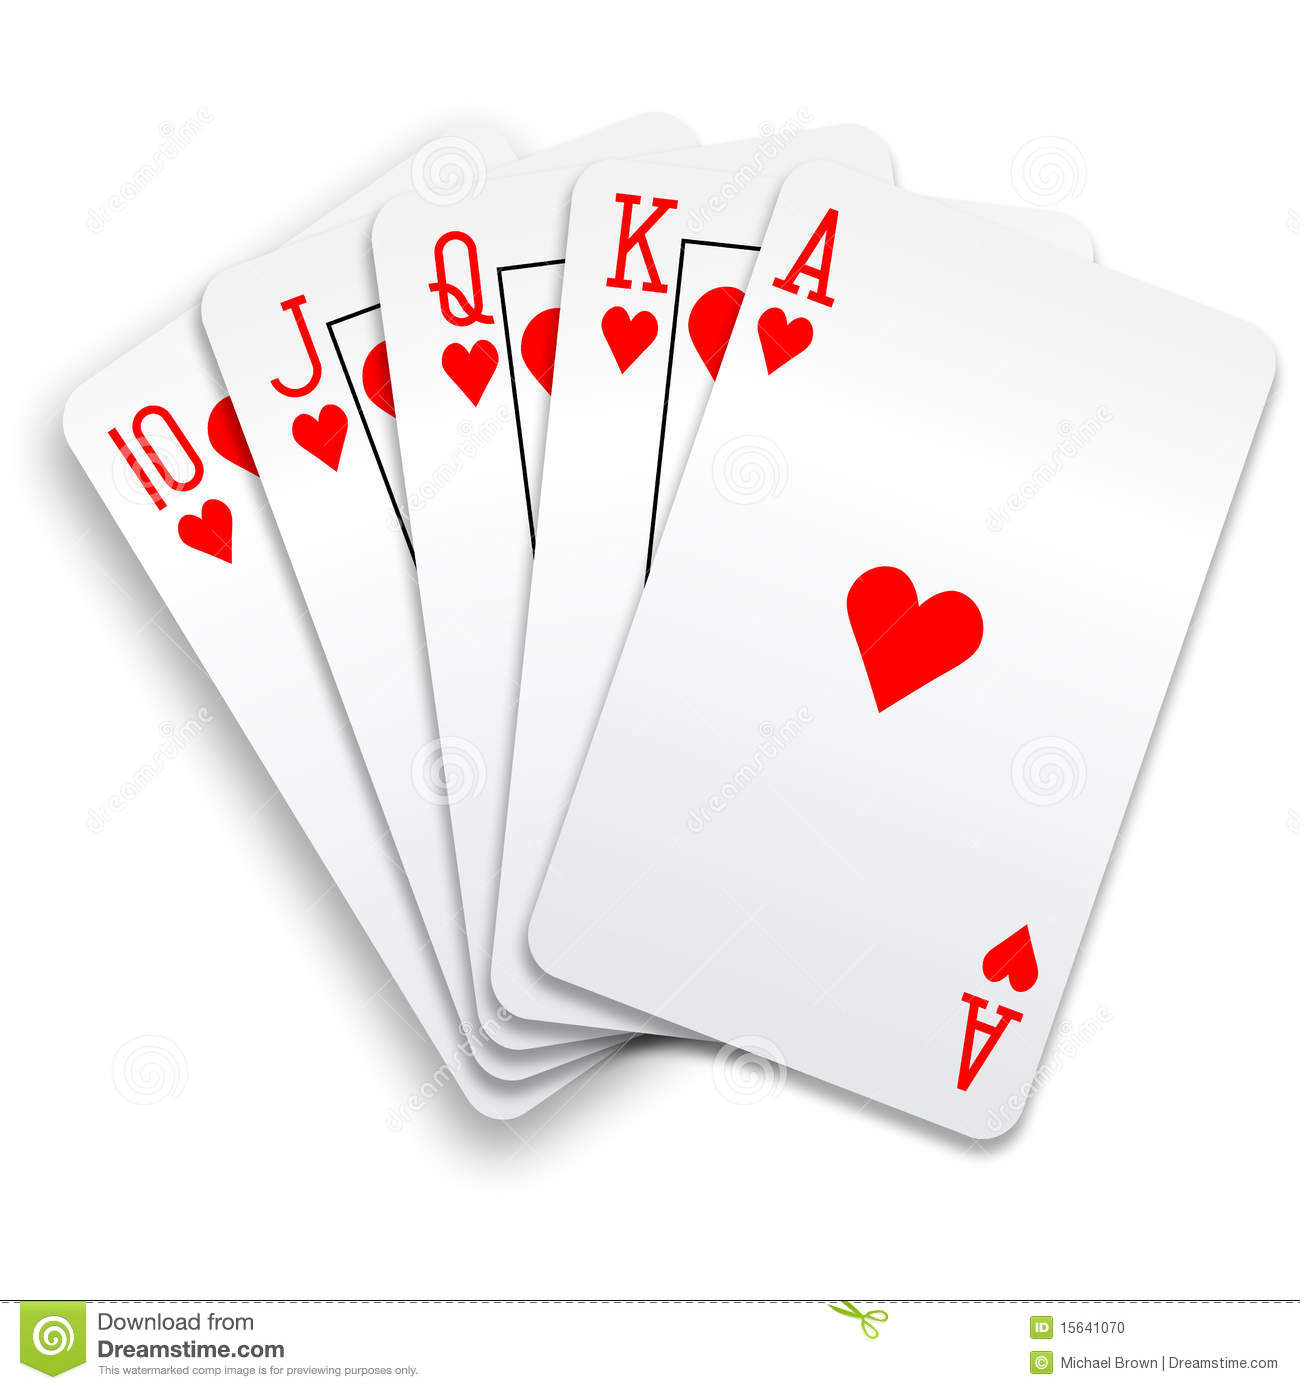 royal flush hands